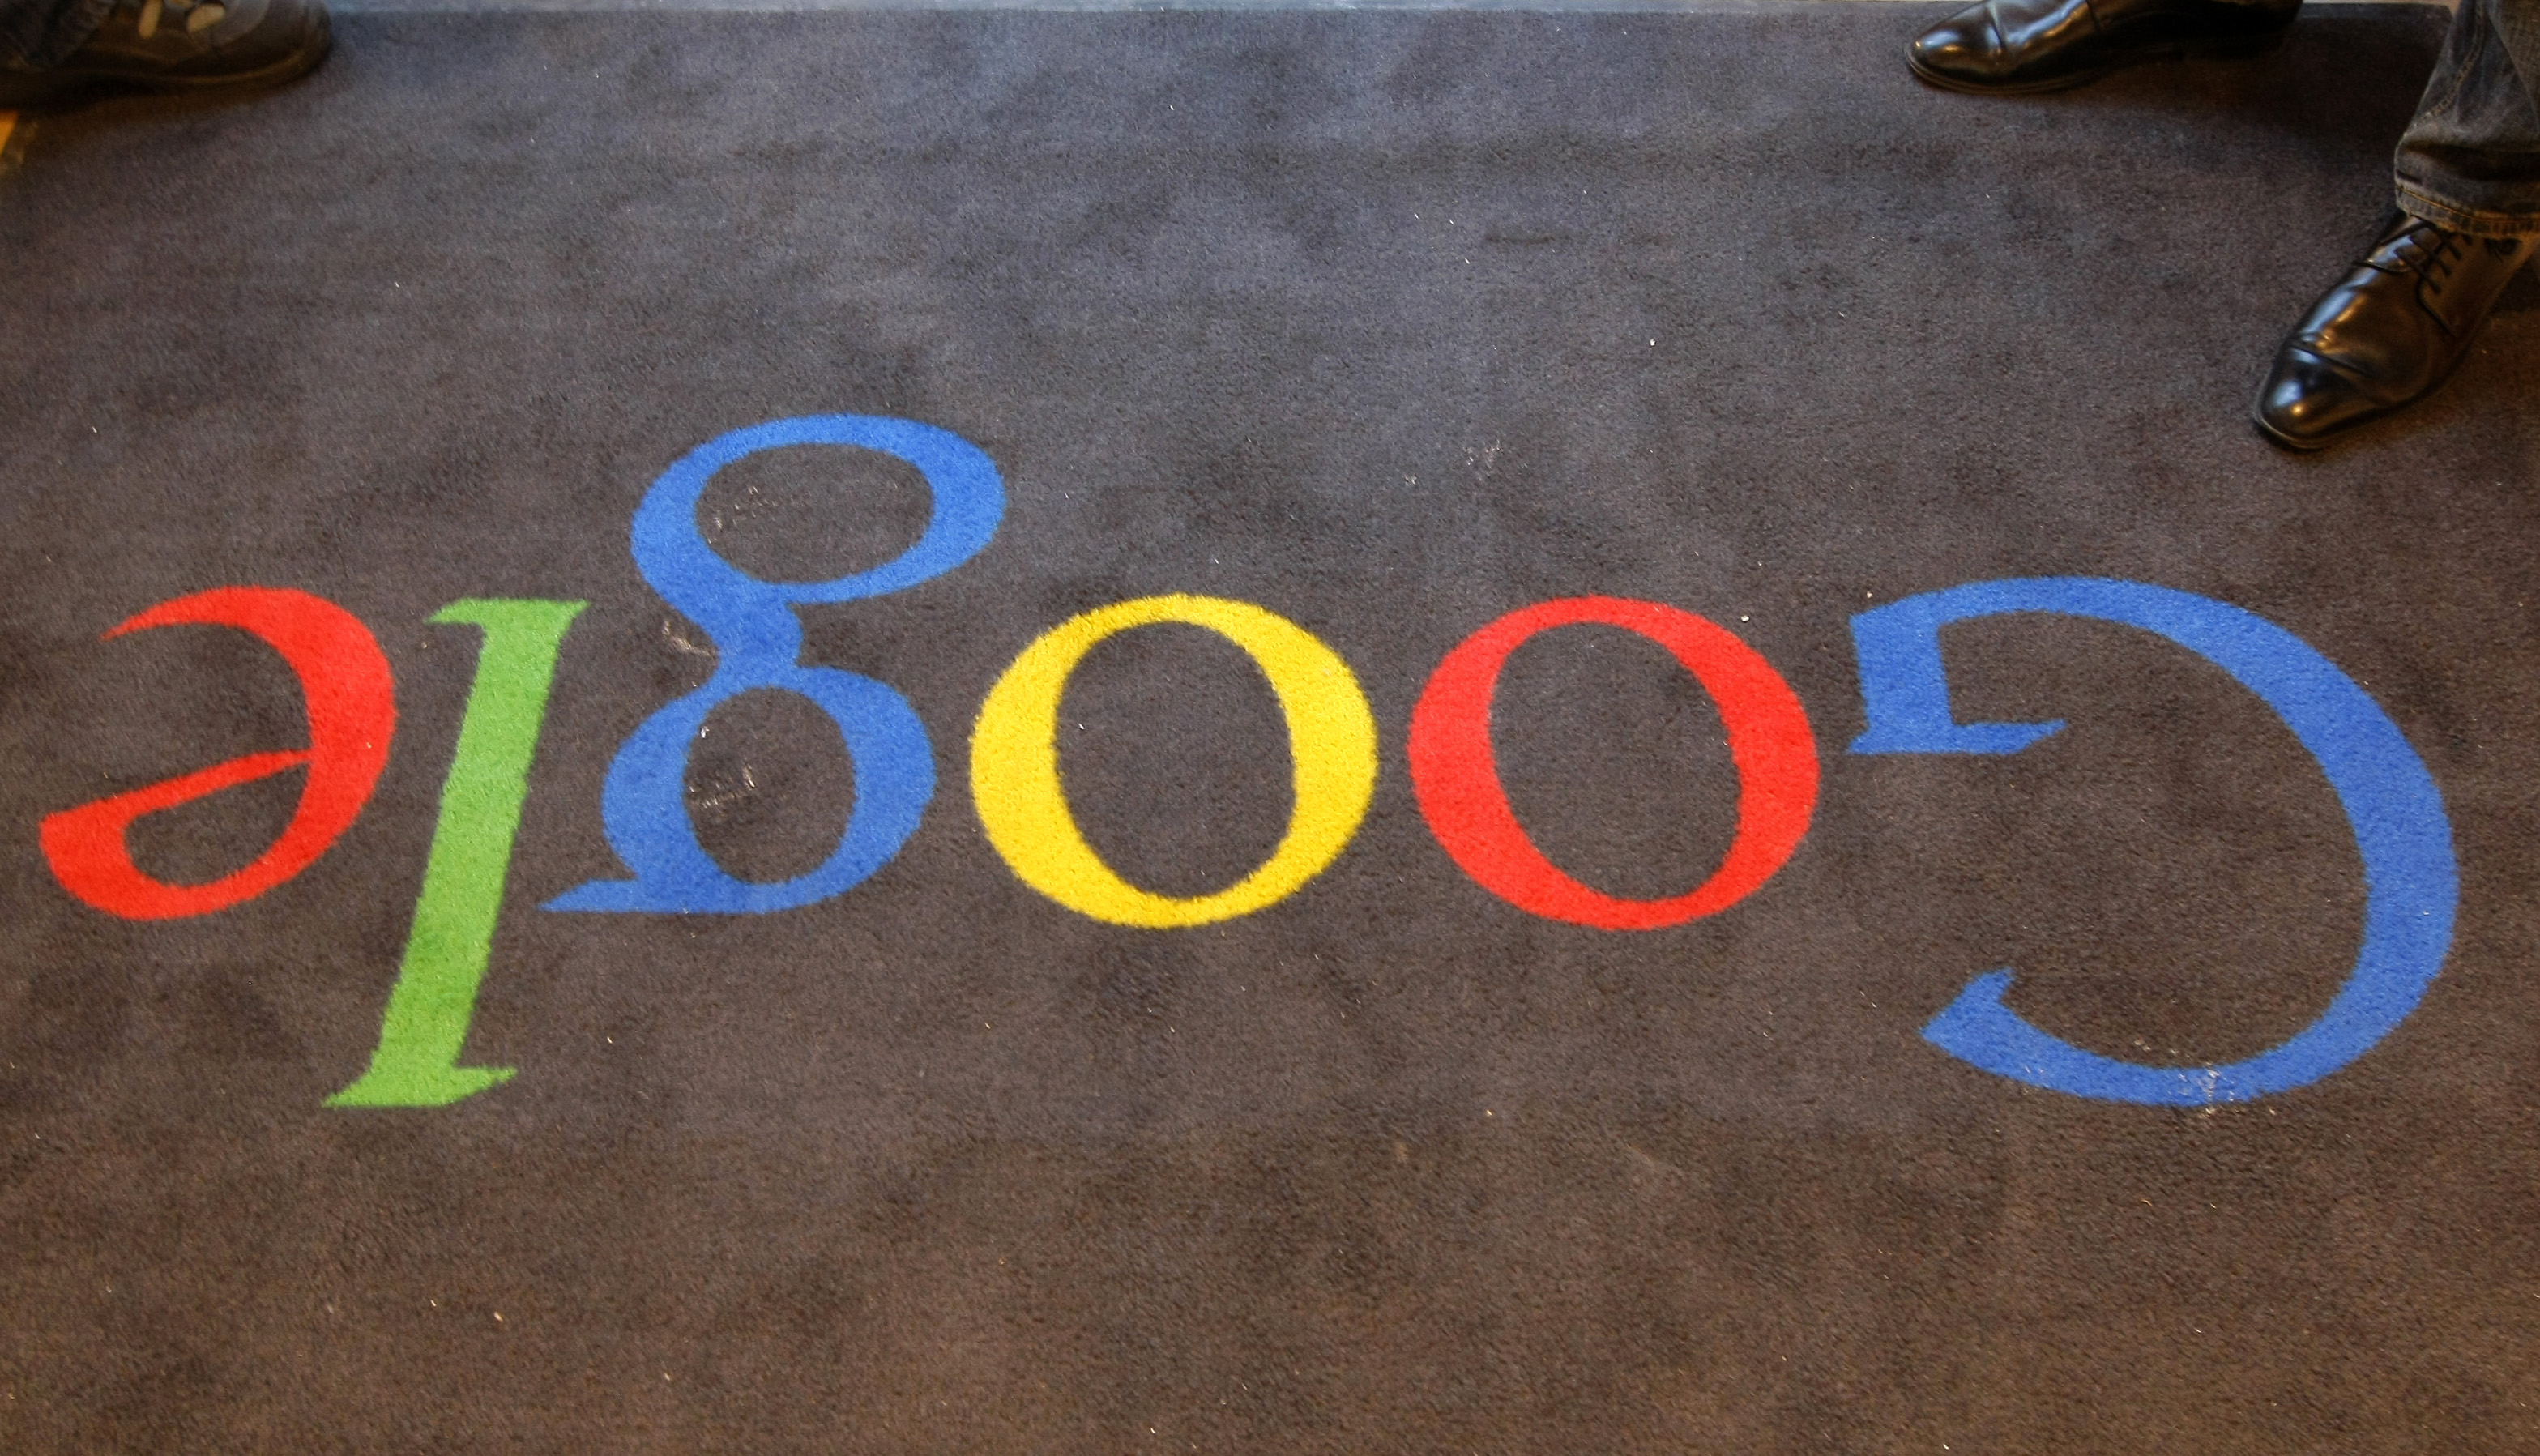 The carpet at Google's office in Paris